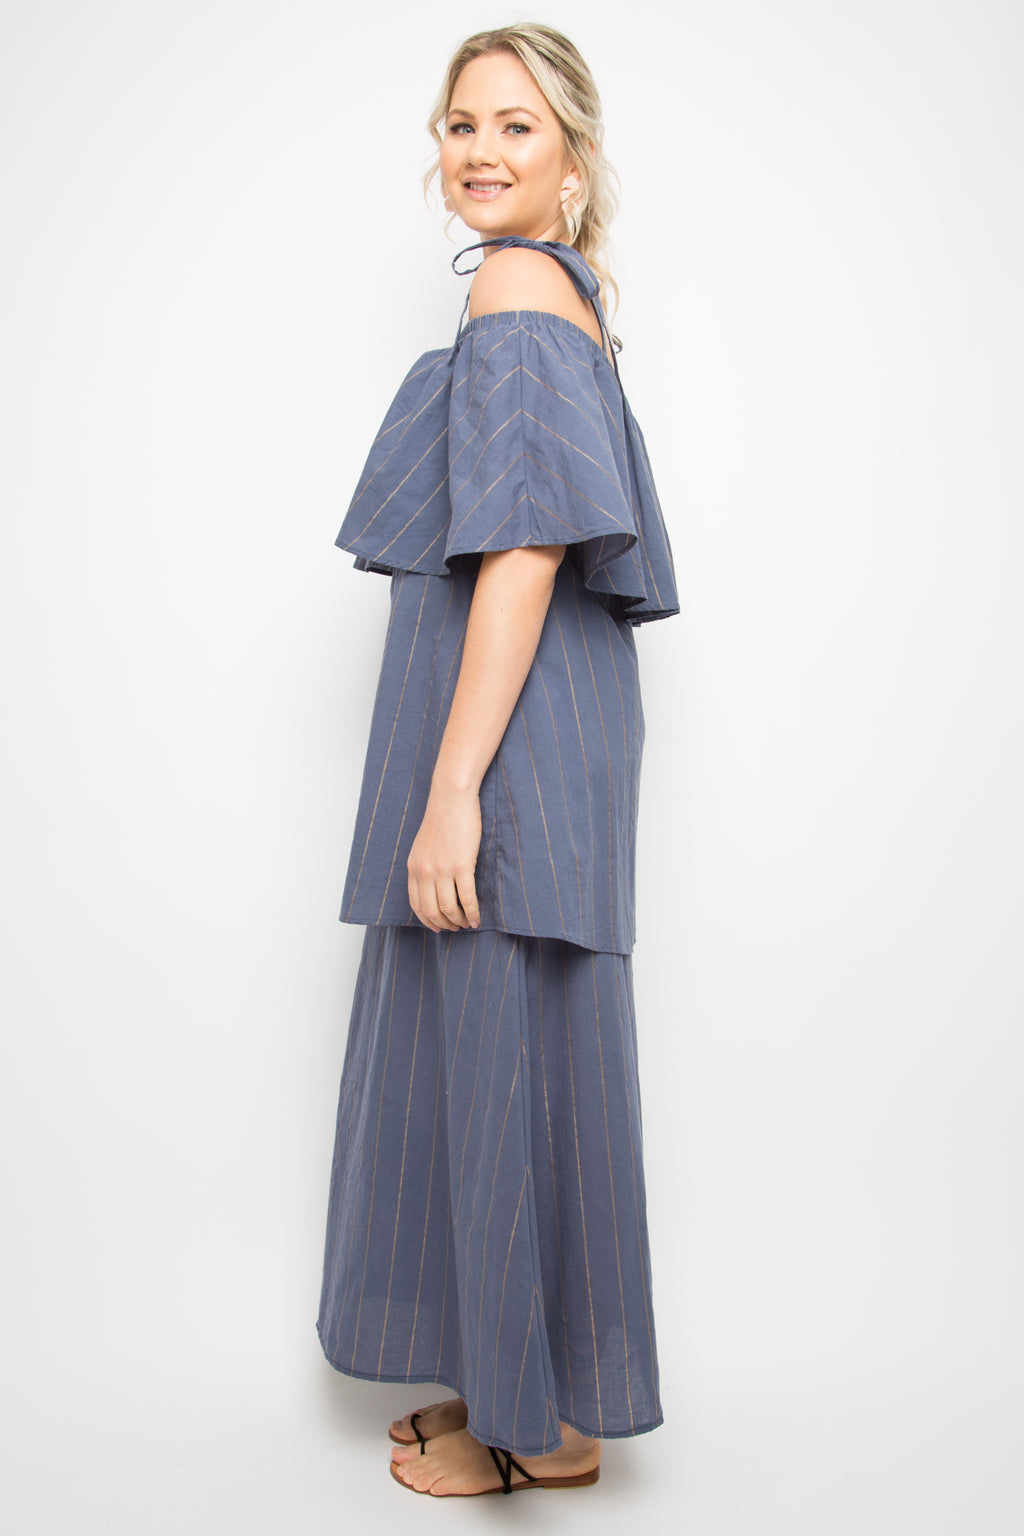 Maxi Layer Frill Dress in Navy Sunbeam